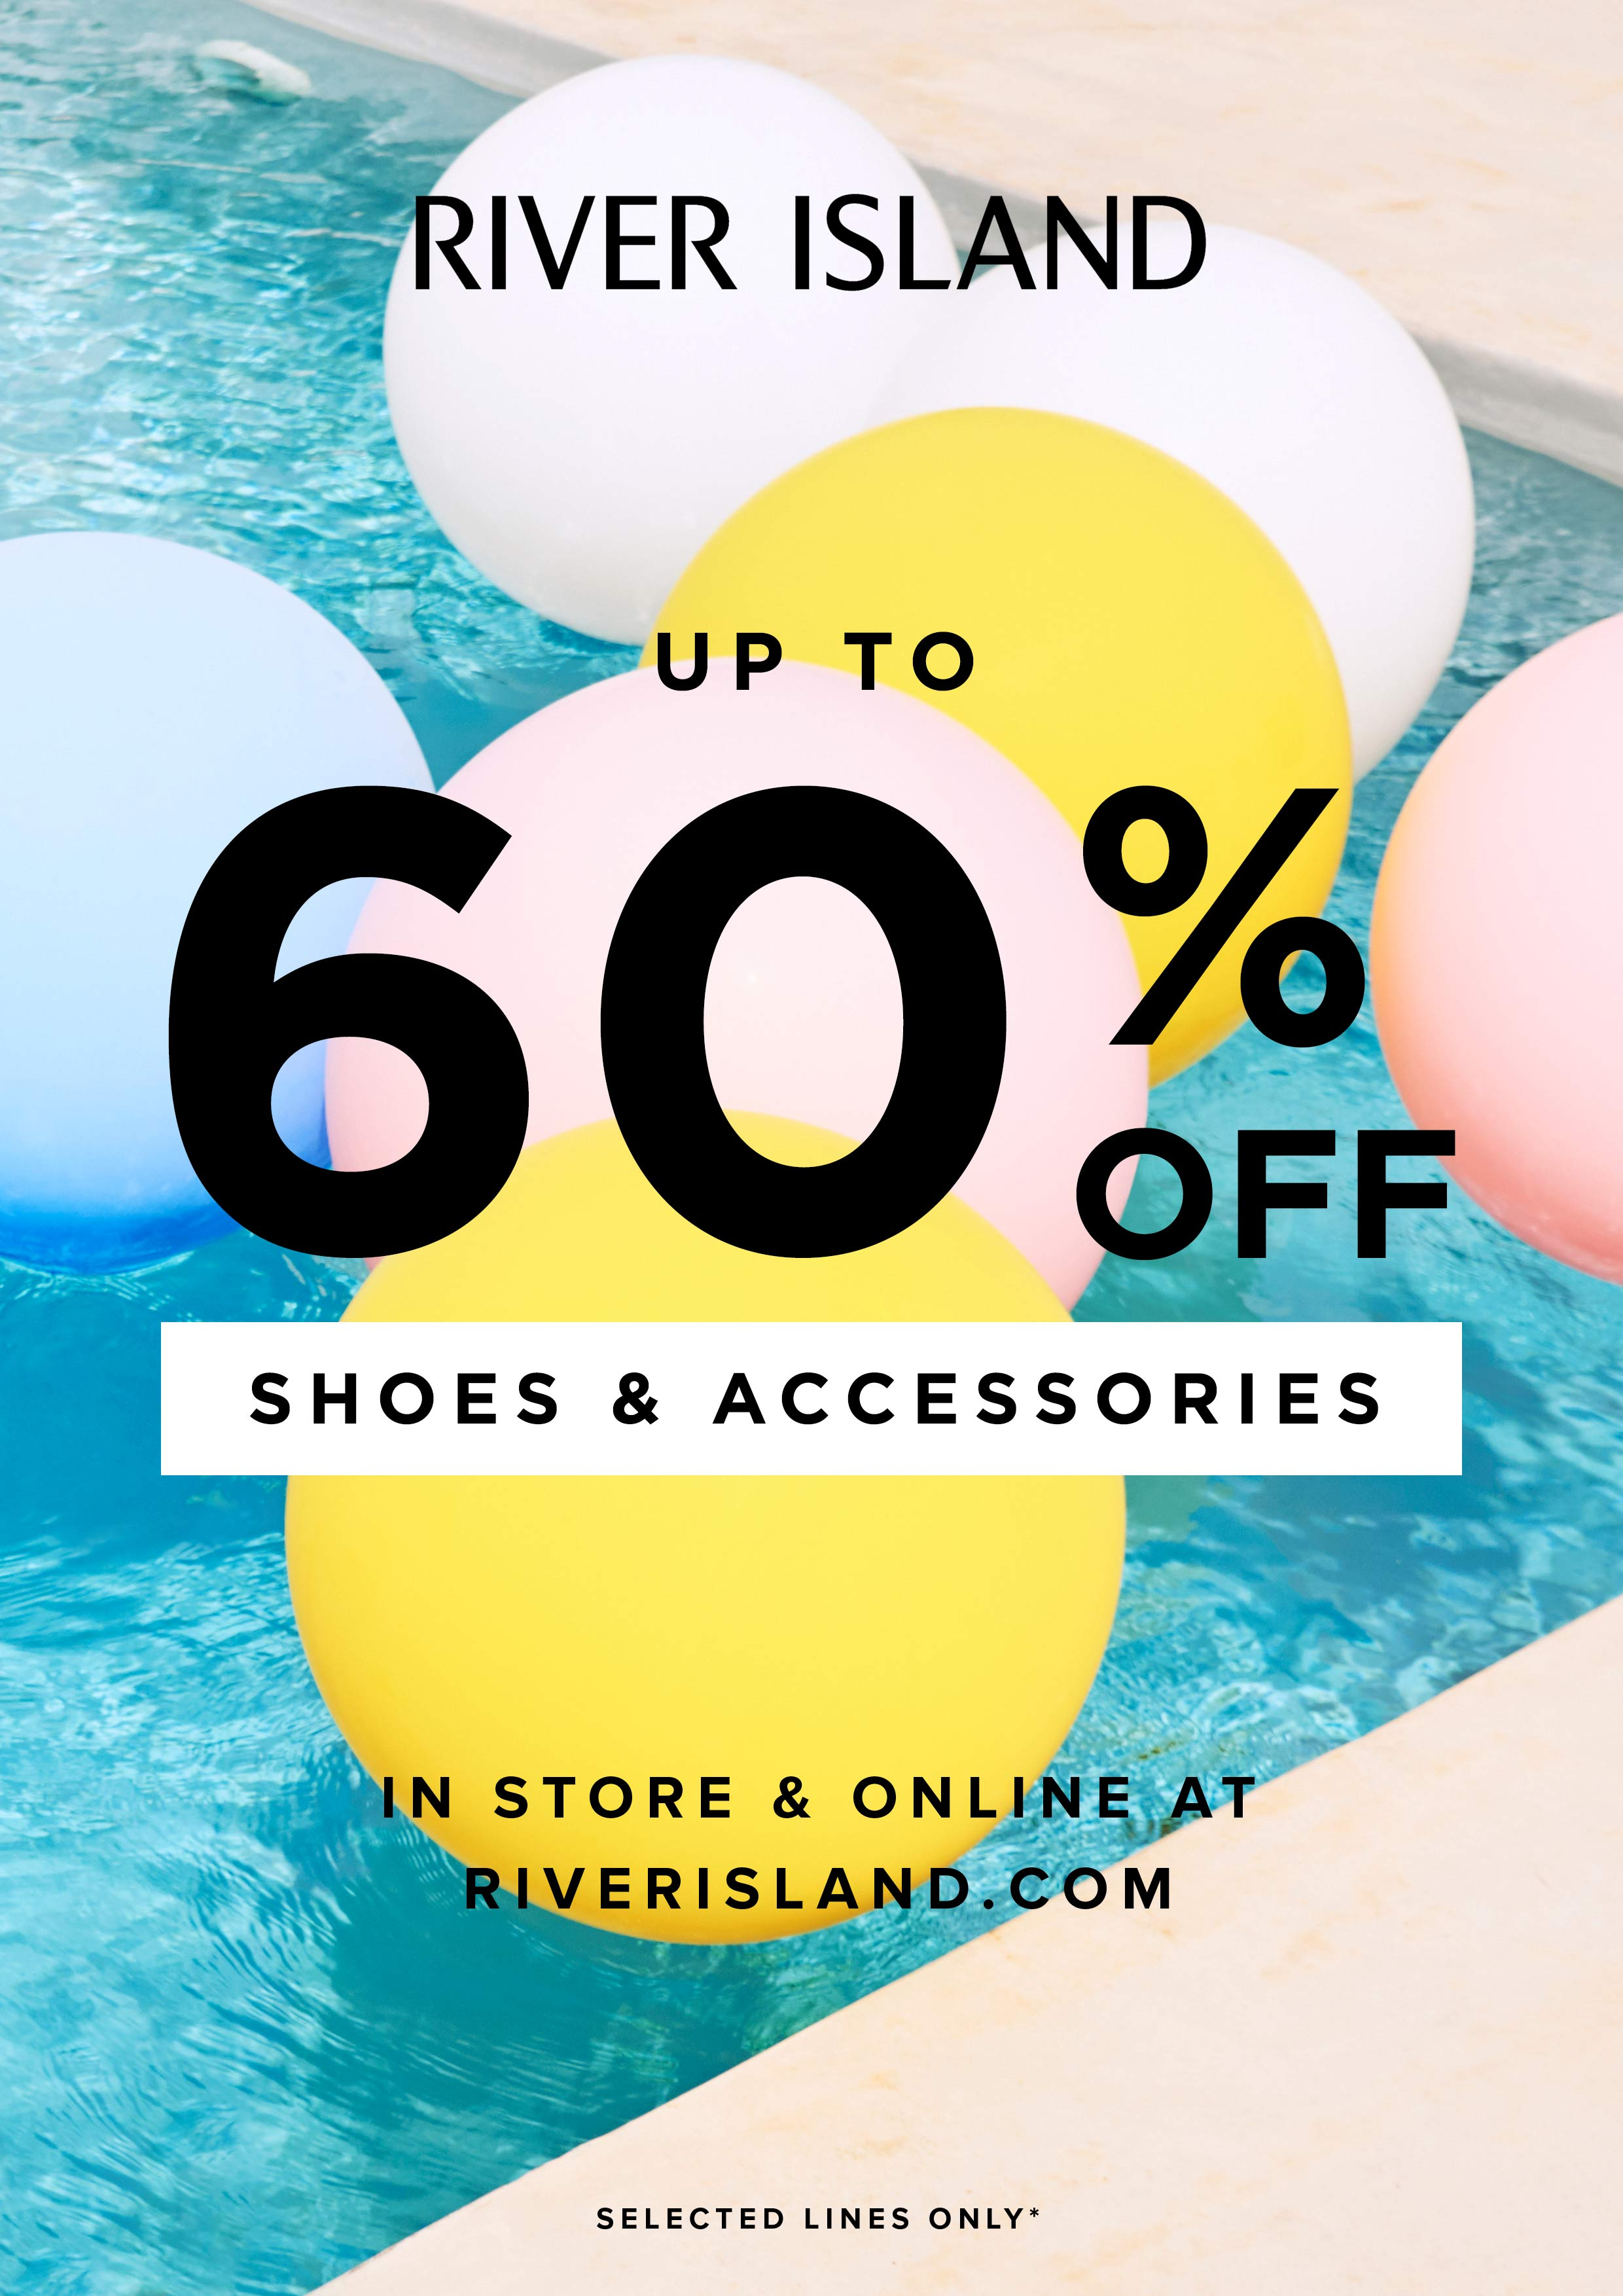 Up To 60% OFF Shoes & Accessories